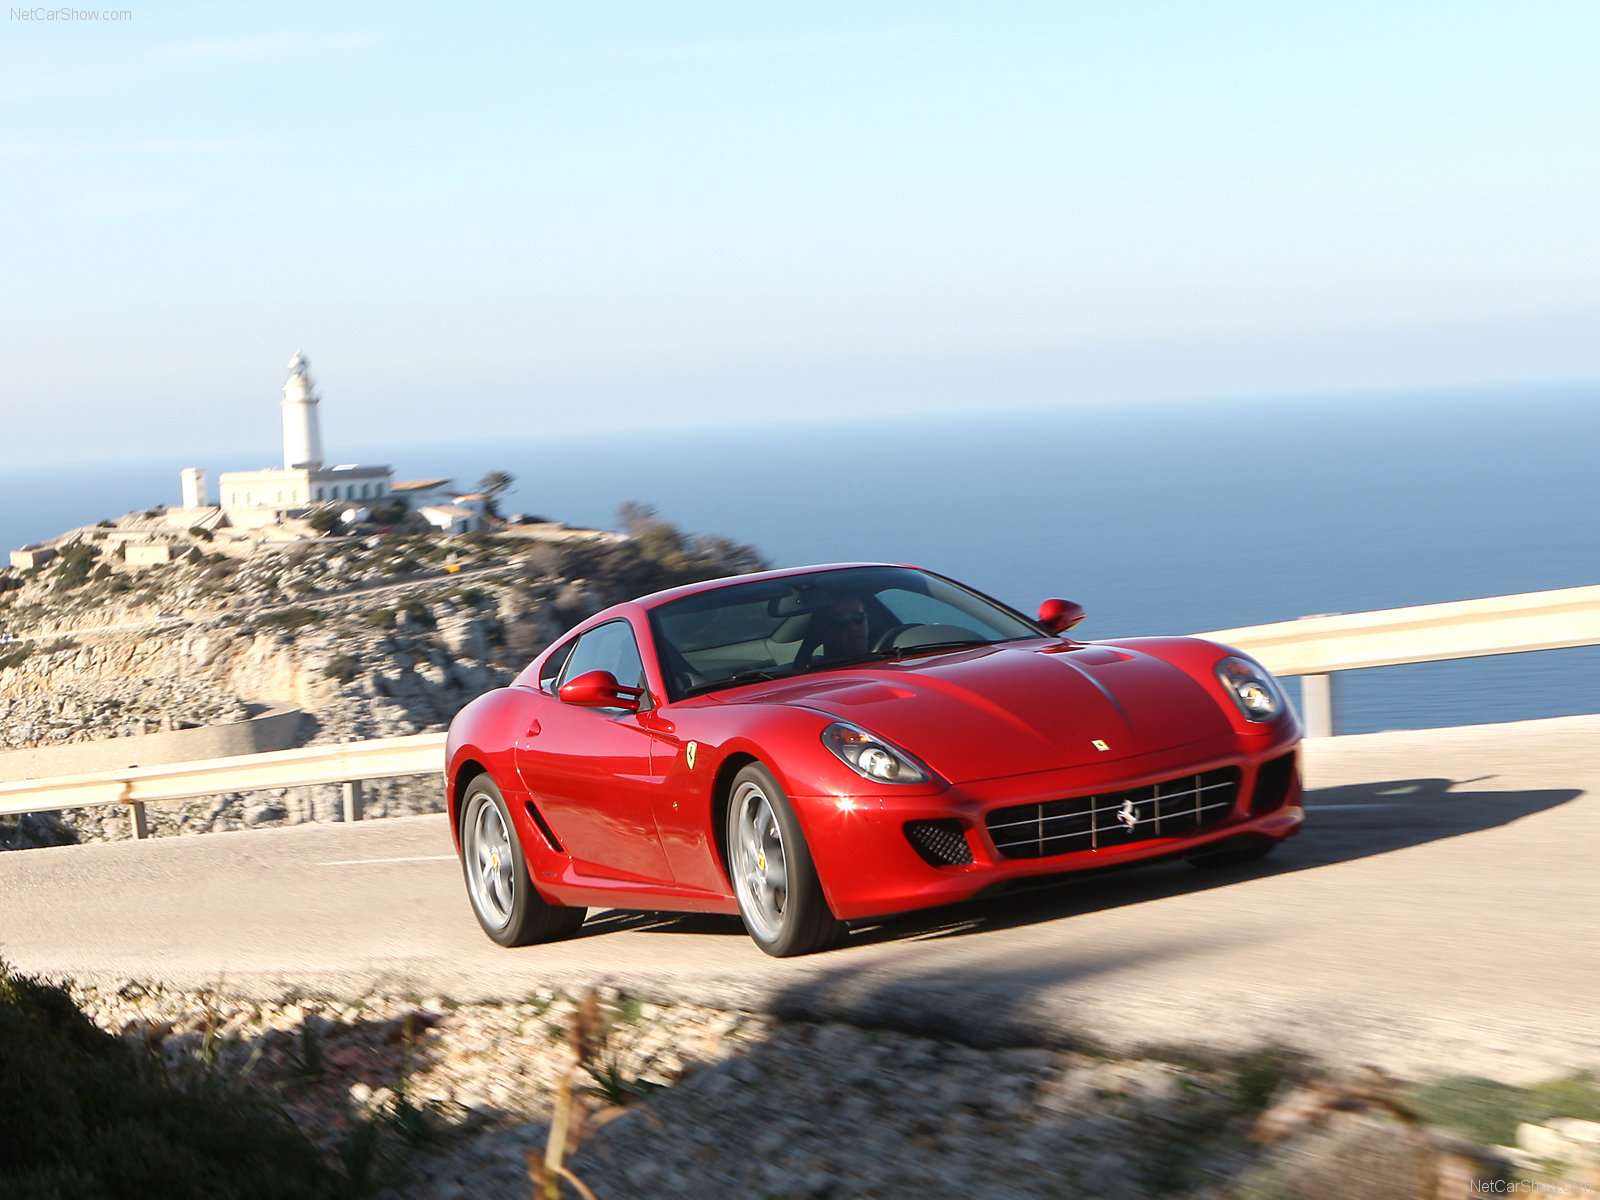 Ferrari 599 GTB Fiorano HGTE photo 65241